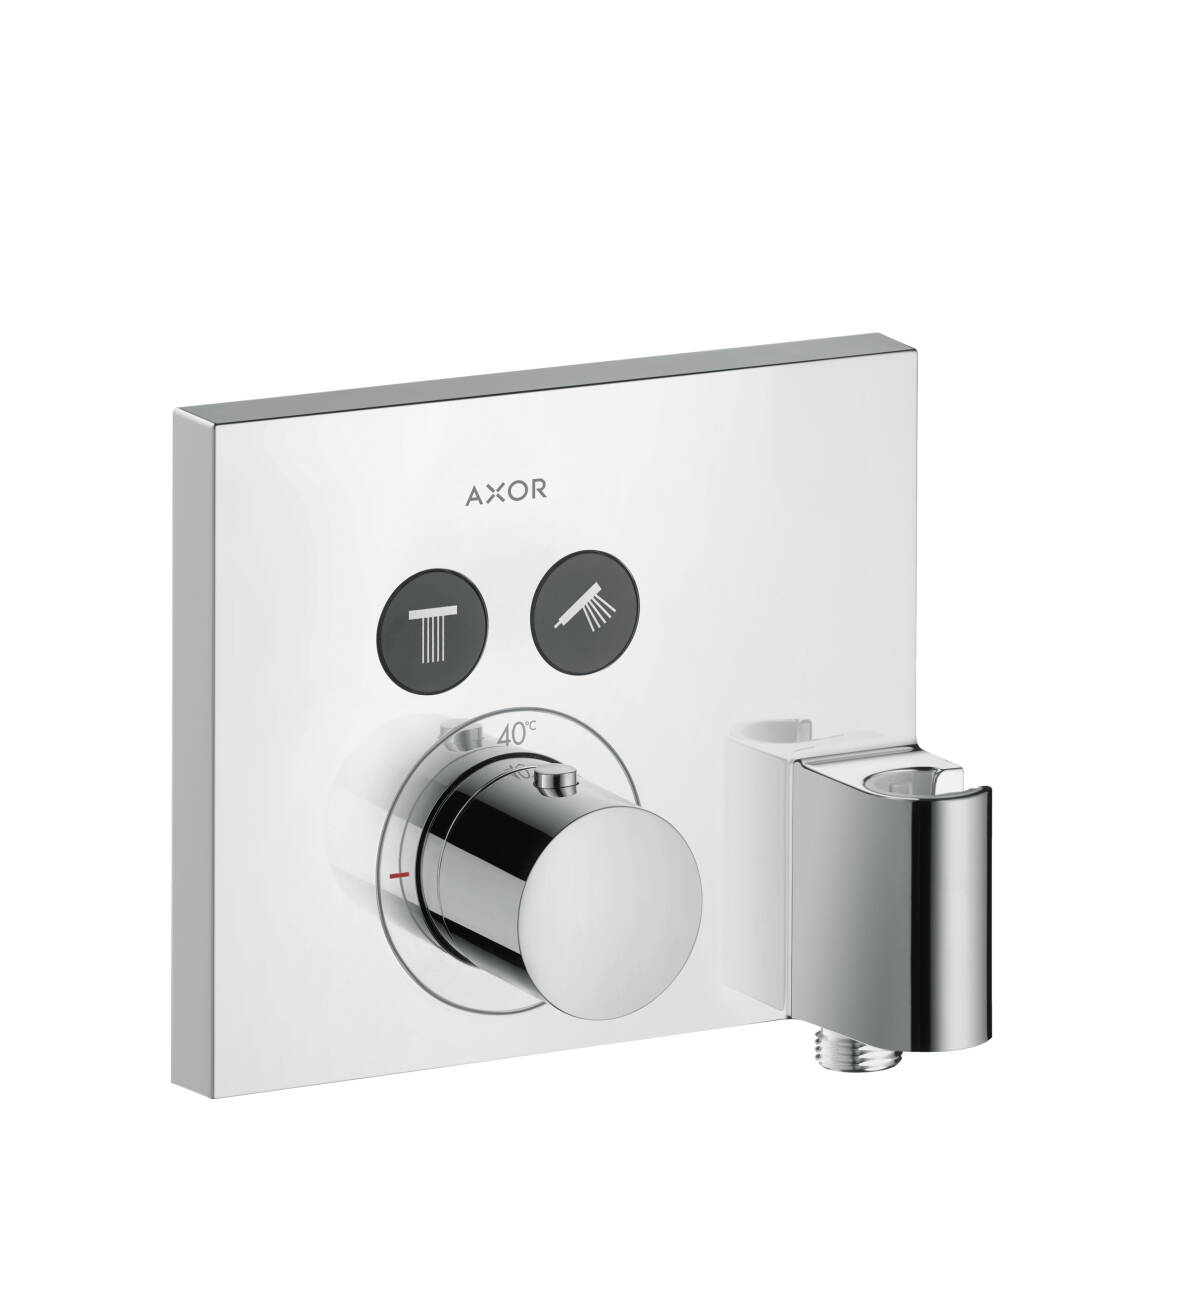 Thermostat for concealed installation square for 2 functions with wall outlet and shower holder, Polished Black Chrome, 36712330